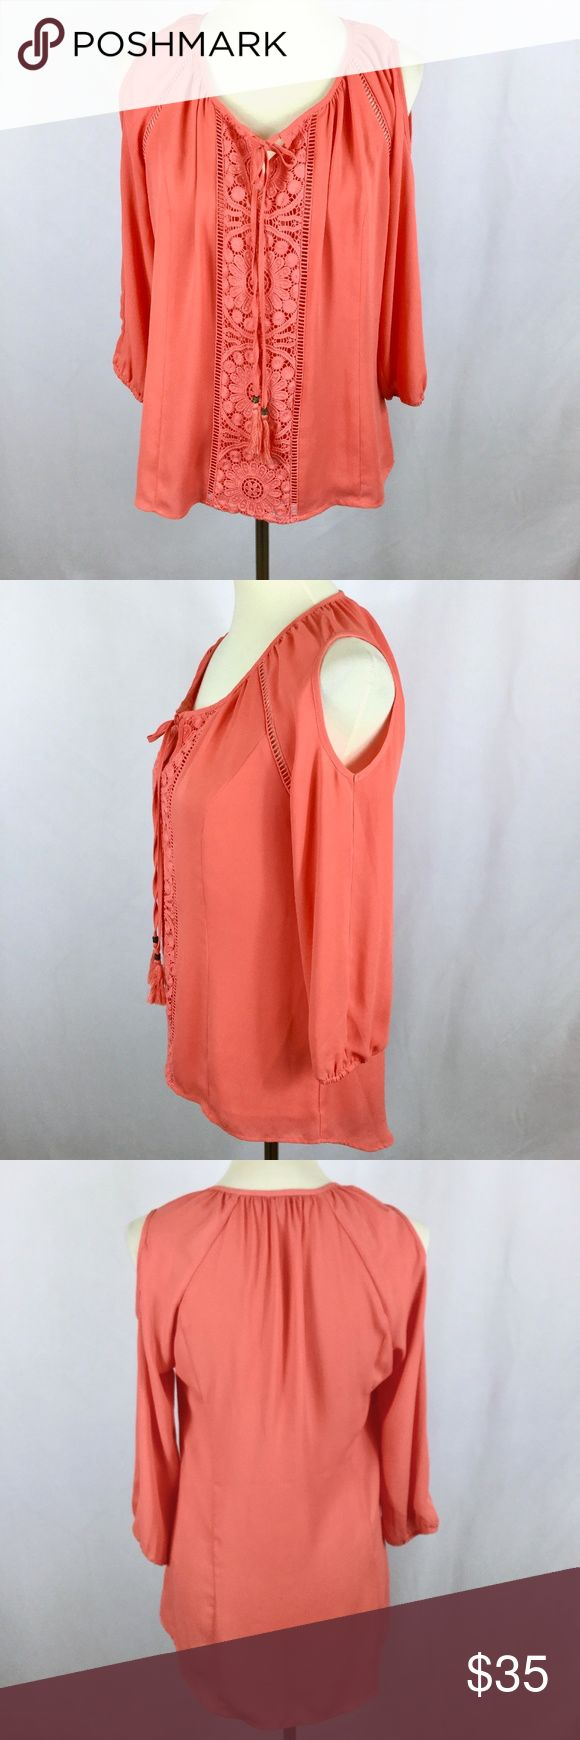 """Daniel Rainn Boho Cold Shoulder Peasant Blouse S Beautiful orange/coral peasant blouse by David Rainn in a cold shoulder style.  Lovely hand crochet lace cutout shapes near the sleeves and in a panel on the front, and two tasseled ties for the neckline. Puff poet sleeves with elasticized cuffs so you can push them up if you want. Bodice has a double layer of chiffon for modesty. Slight hi-low design, with the back longer than the front. New without tags.   Measurements: Bust: 38"""" Length: 26""""…"""